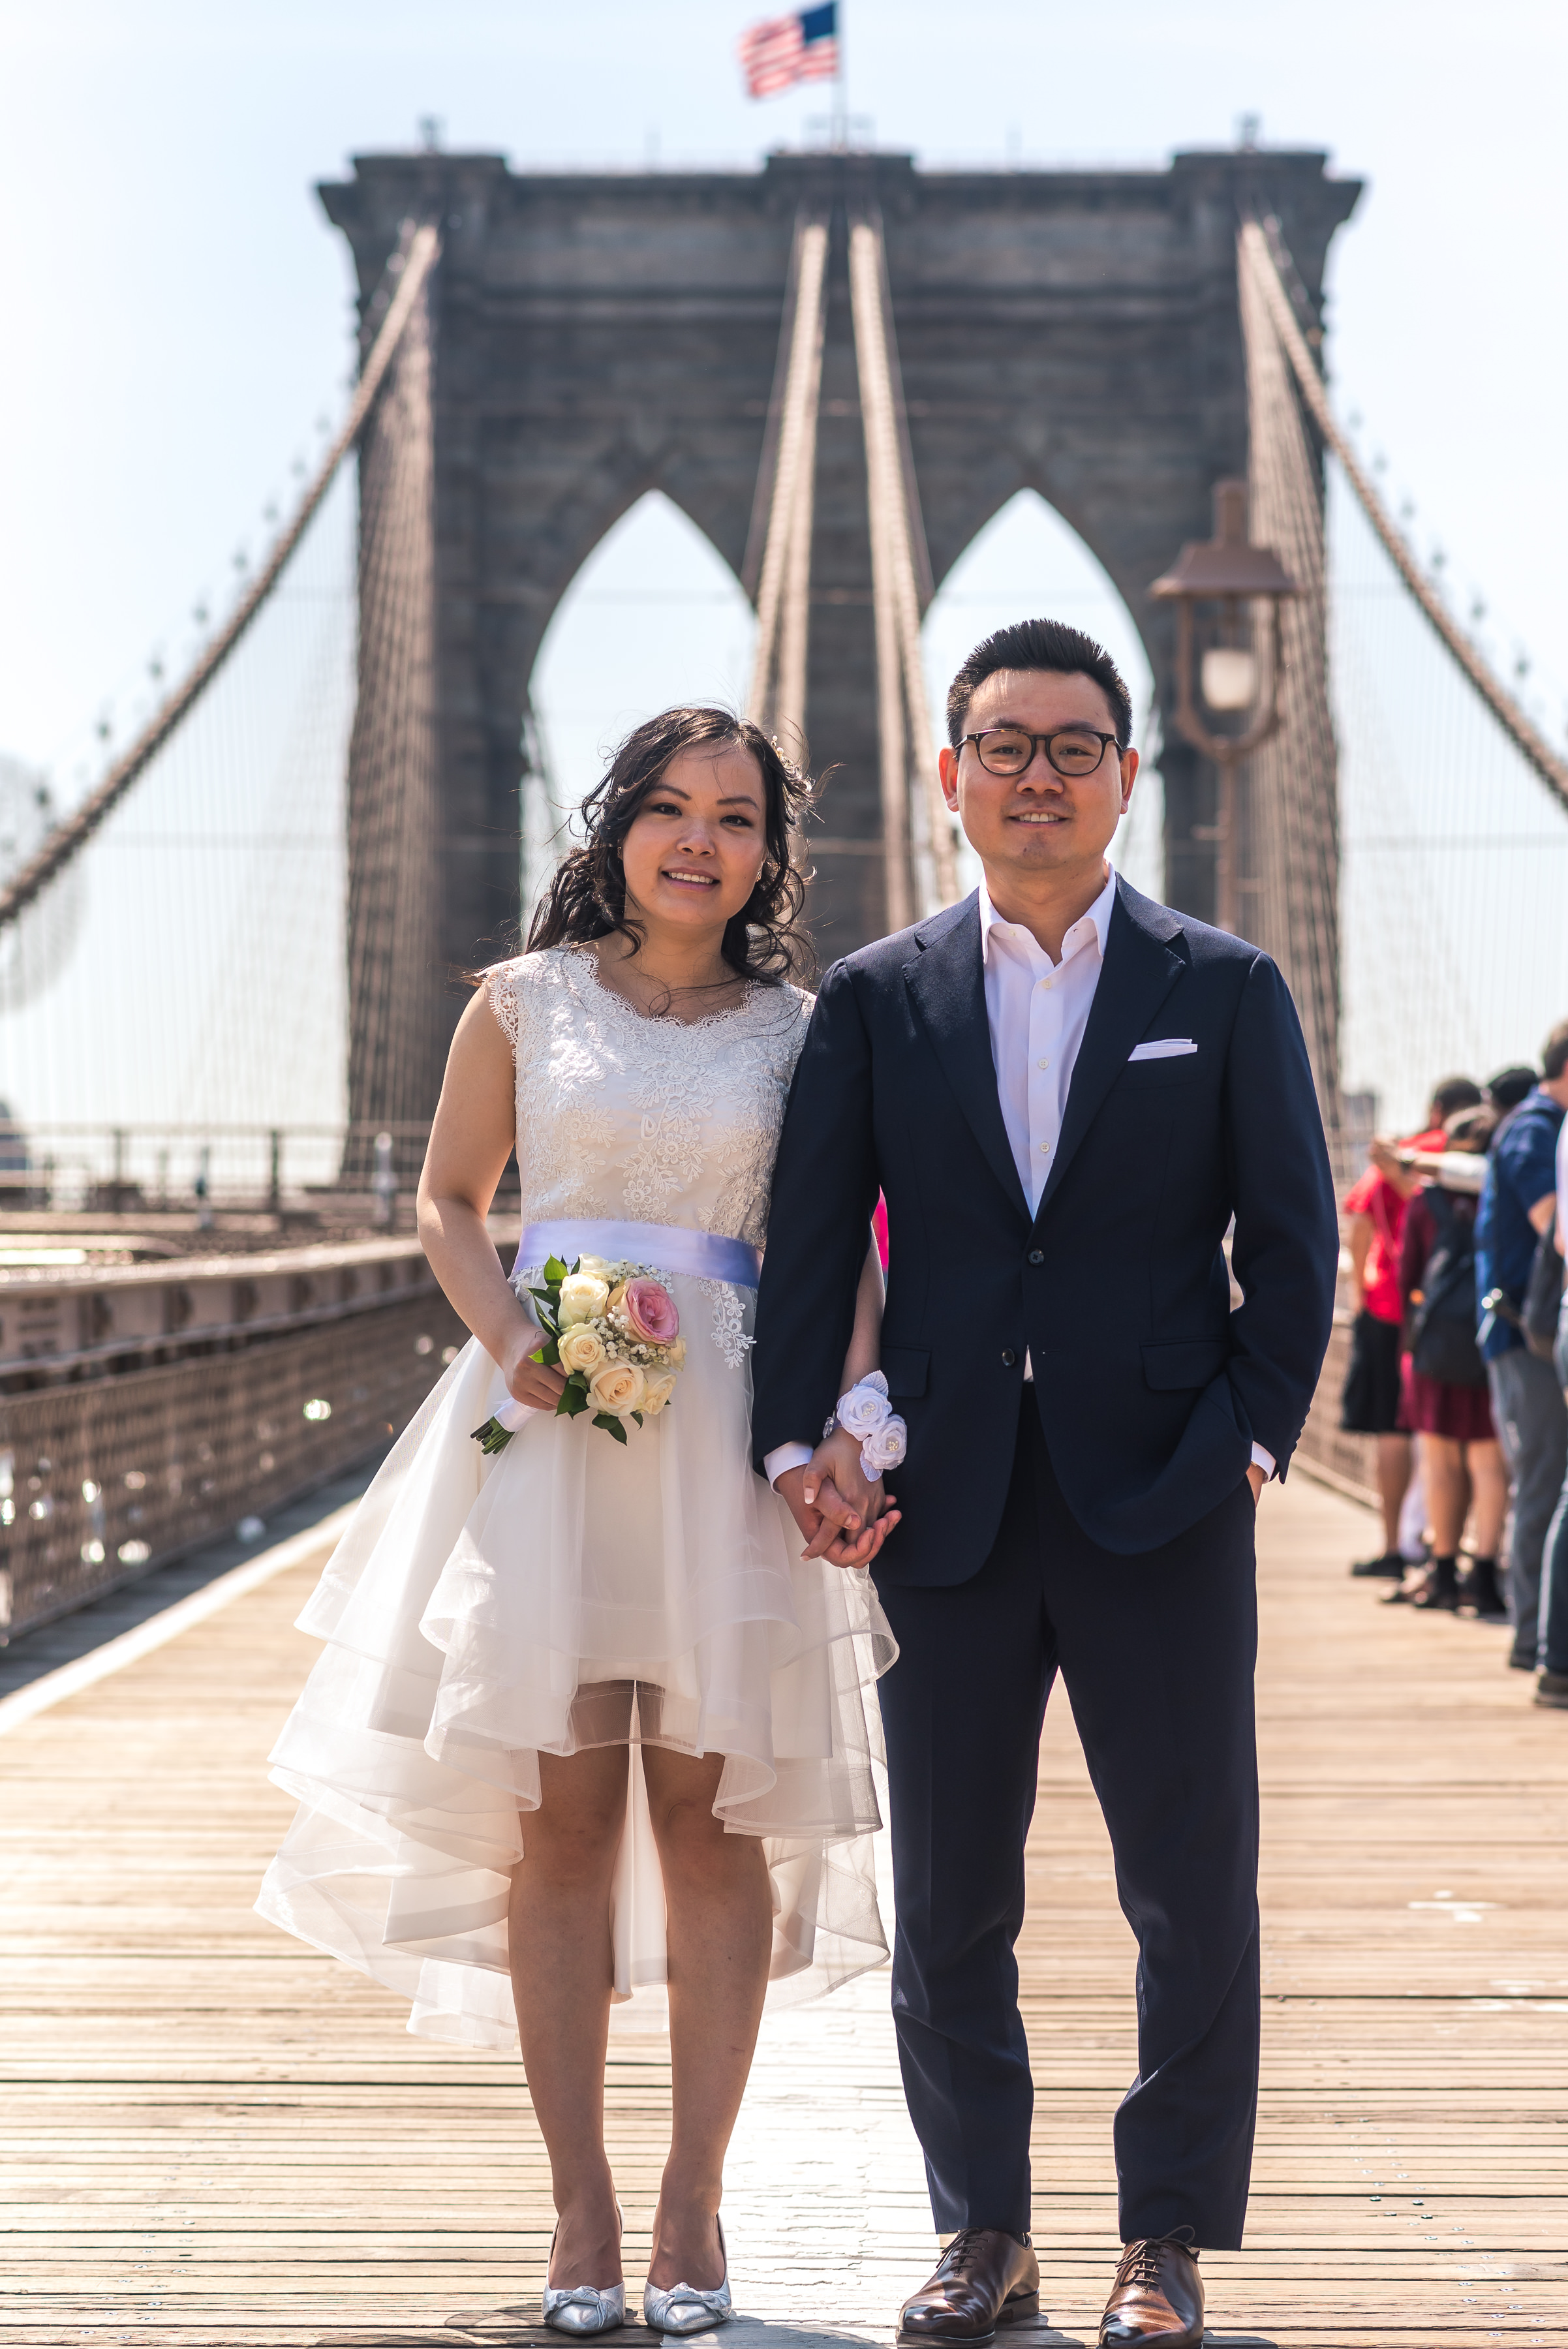 many and andy had a low key ceremony at city hall in manhattan, new york. Part of being a photojournalistic photographer is being able to set up natural looking photos that tell the story of their day. after the ceremony, we took some photos in the area as well as on the Brookyln Bridge